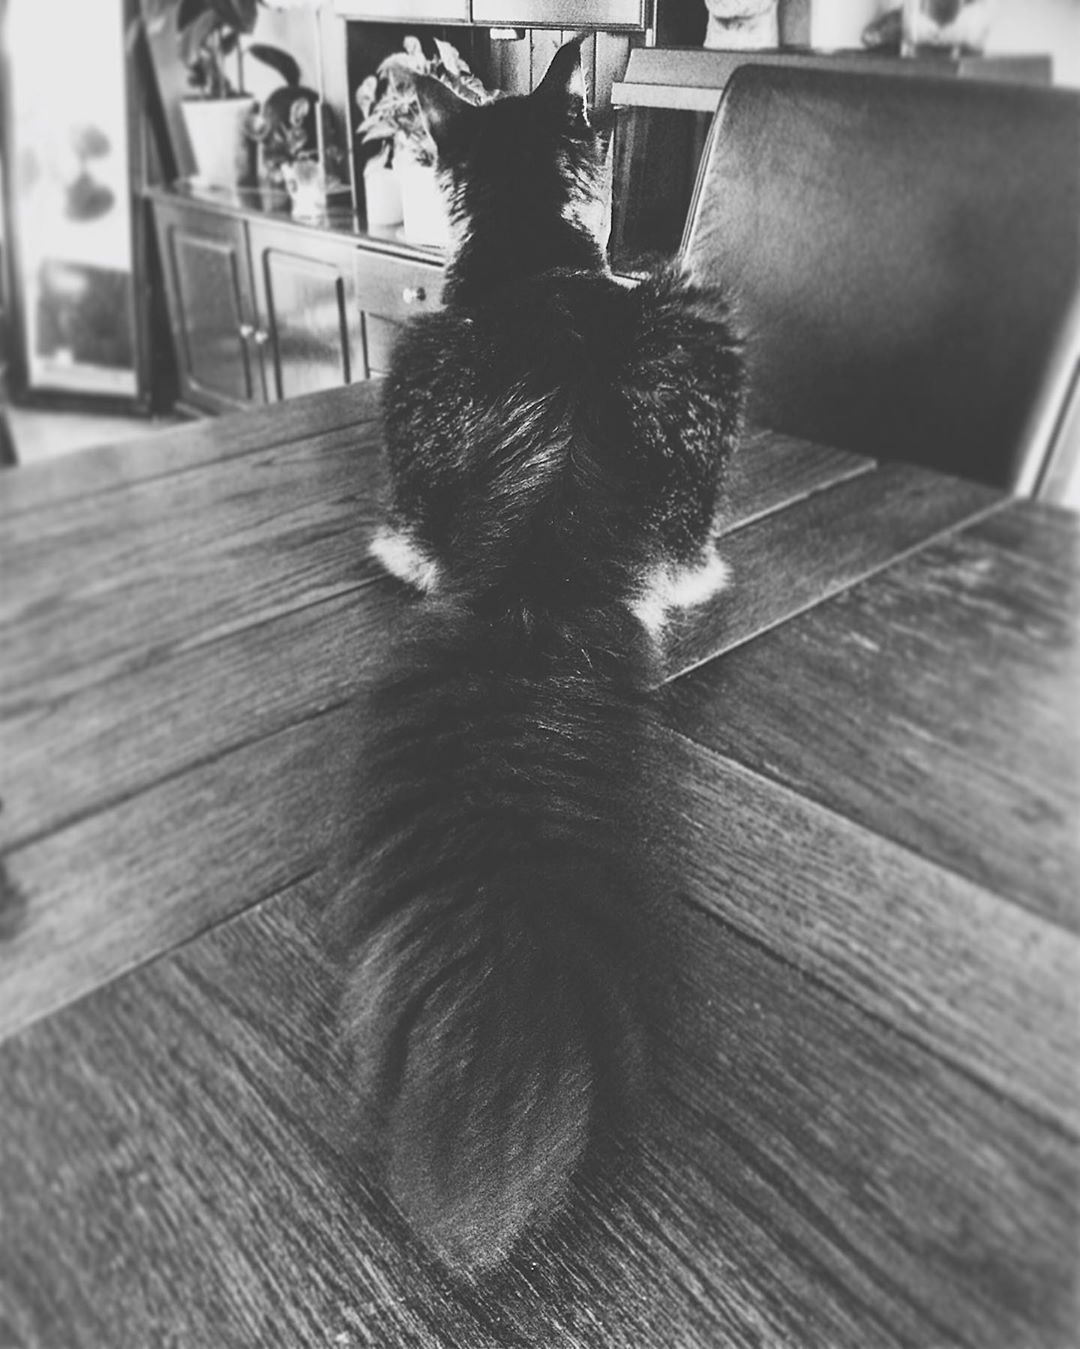 Fluffy tail #mainecoonlife #mainecoon_no #mainecoonbaby #mainecoonoftheday #mainecoon_id #mainecoonstagram #mainecooncats #mainecoonkitty #mainecoonworld #mainecoons #mainecoonfun #mainecoonlovers #mainecoonkittens #mainecoon #mainecoonlove #mainecoonsofig #mainecooninstagram #mainecoonhouse #mainecoon_feature #mainecoonsofinstagram #mainecoongram #mainecooncat #mainecooncorner #mainecoonlover #mainecoonofinstagram #mainecoonkitten #cat#cats#gentle#giant